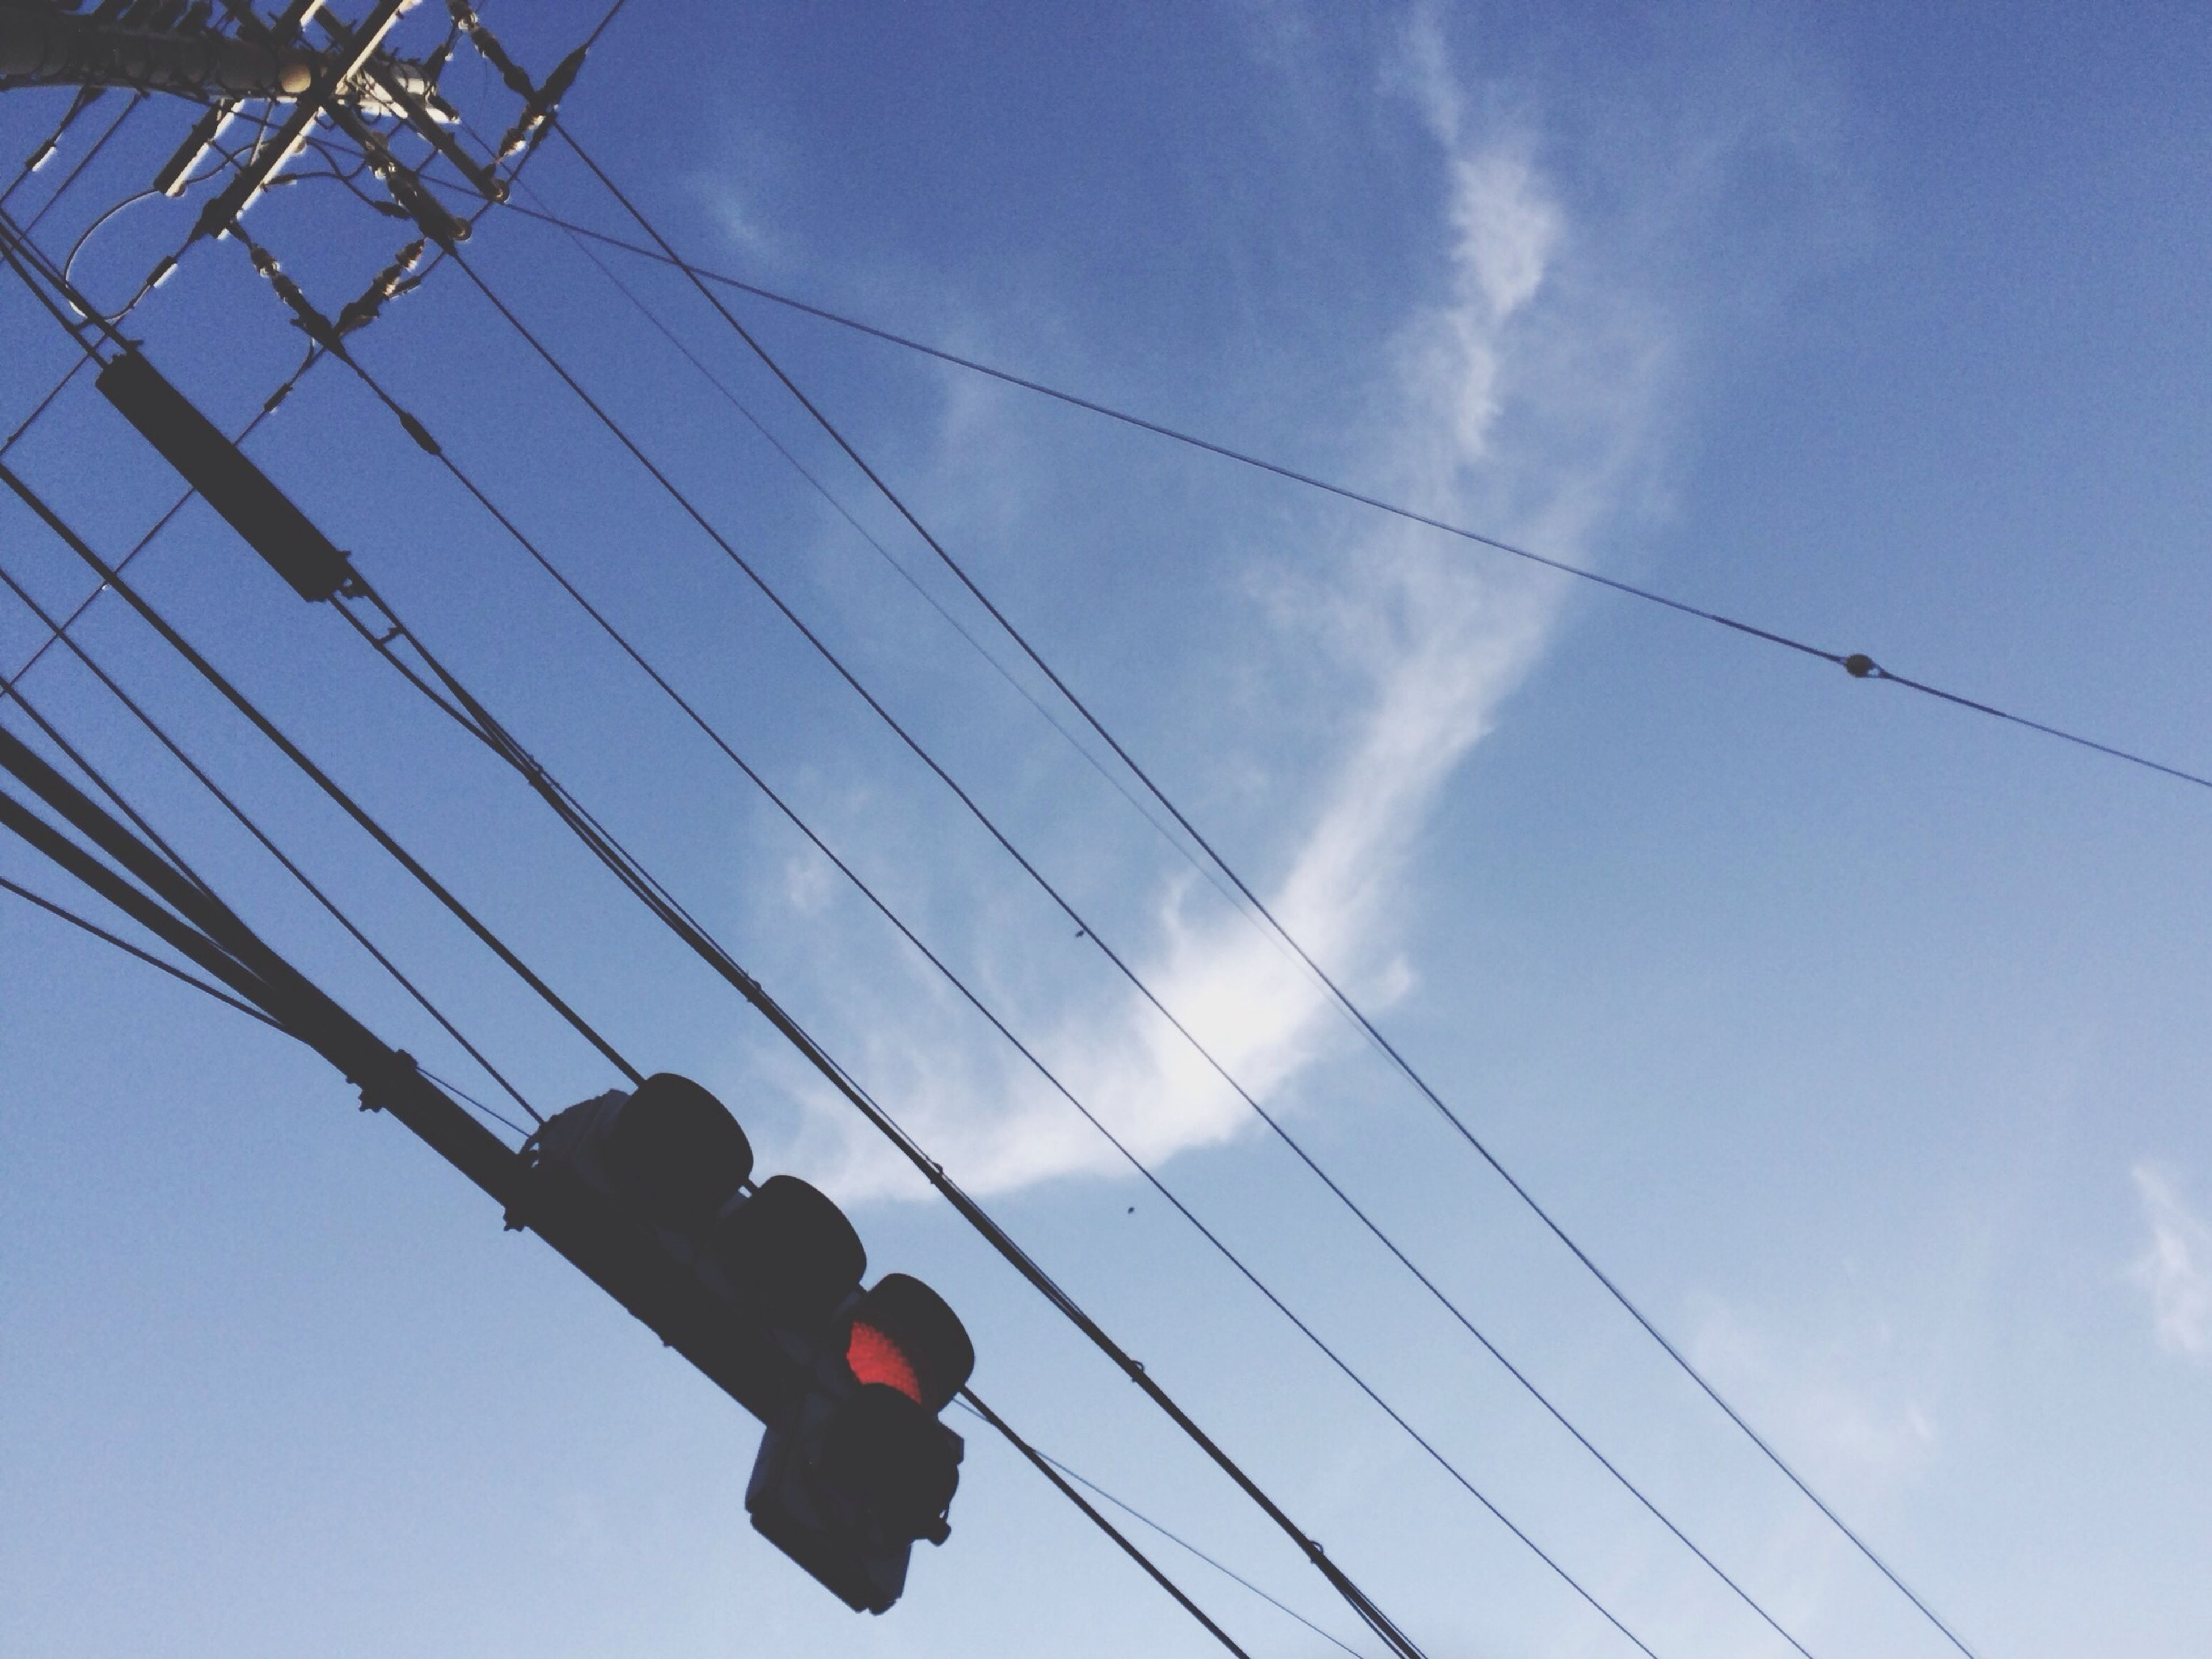 low angle view, cable, power line, sky, connection, electricity, technology, power supply, cloud - sky, leisure activity, electricity pylon, blue, lifestyles, men, power cable, transportation, day, cloud